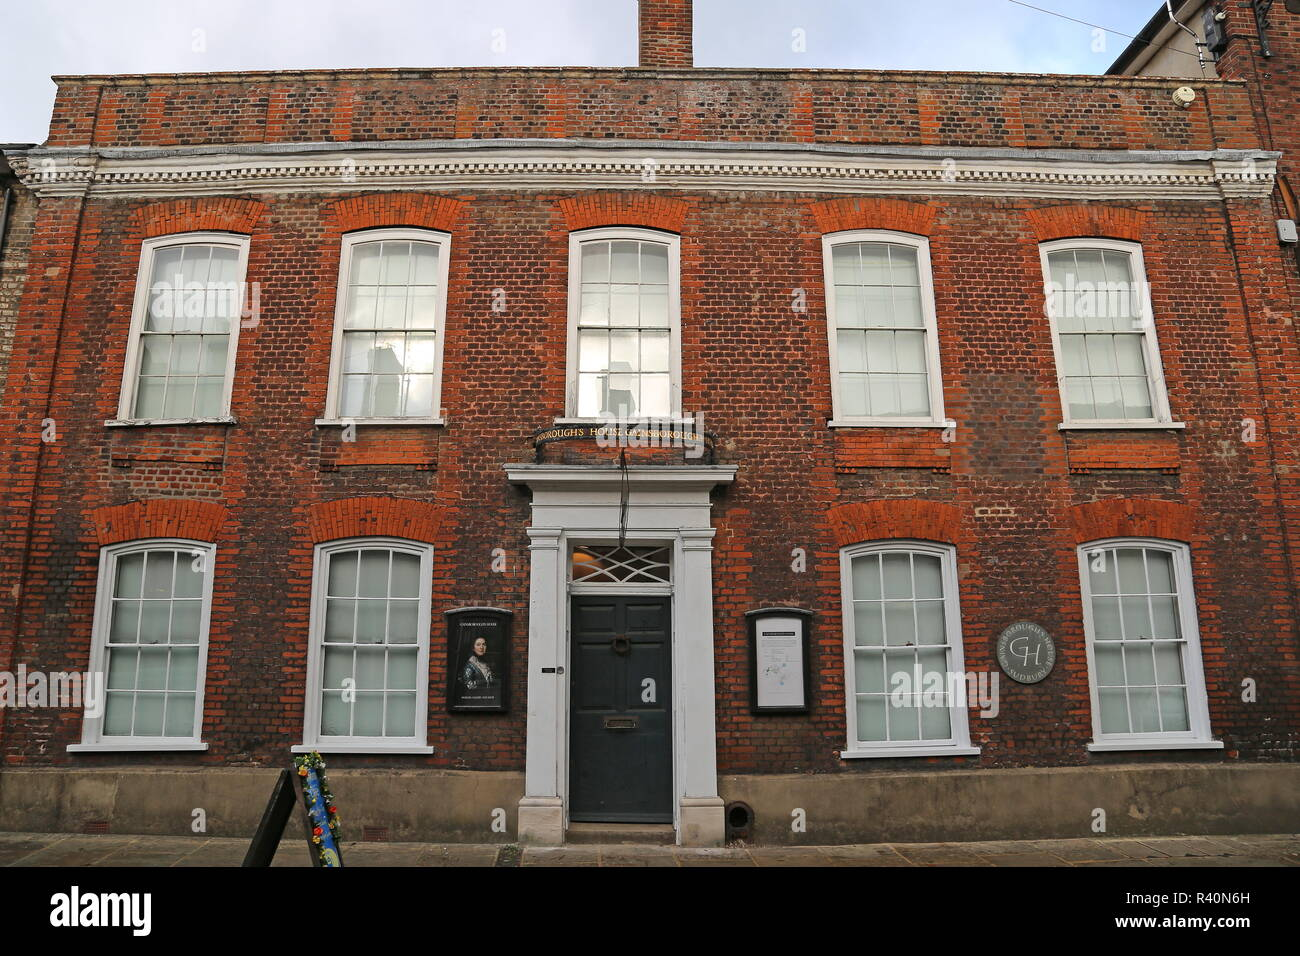 Gainsborough's House museum, Gainsborough Street, Sudbury, Babergh district, Suffolk, East Anglia, England, Great Britain, United Kingdom, UK, Europe - Stock Image